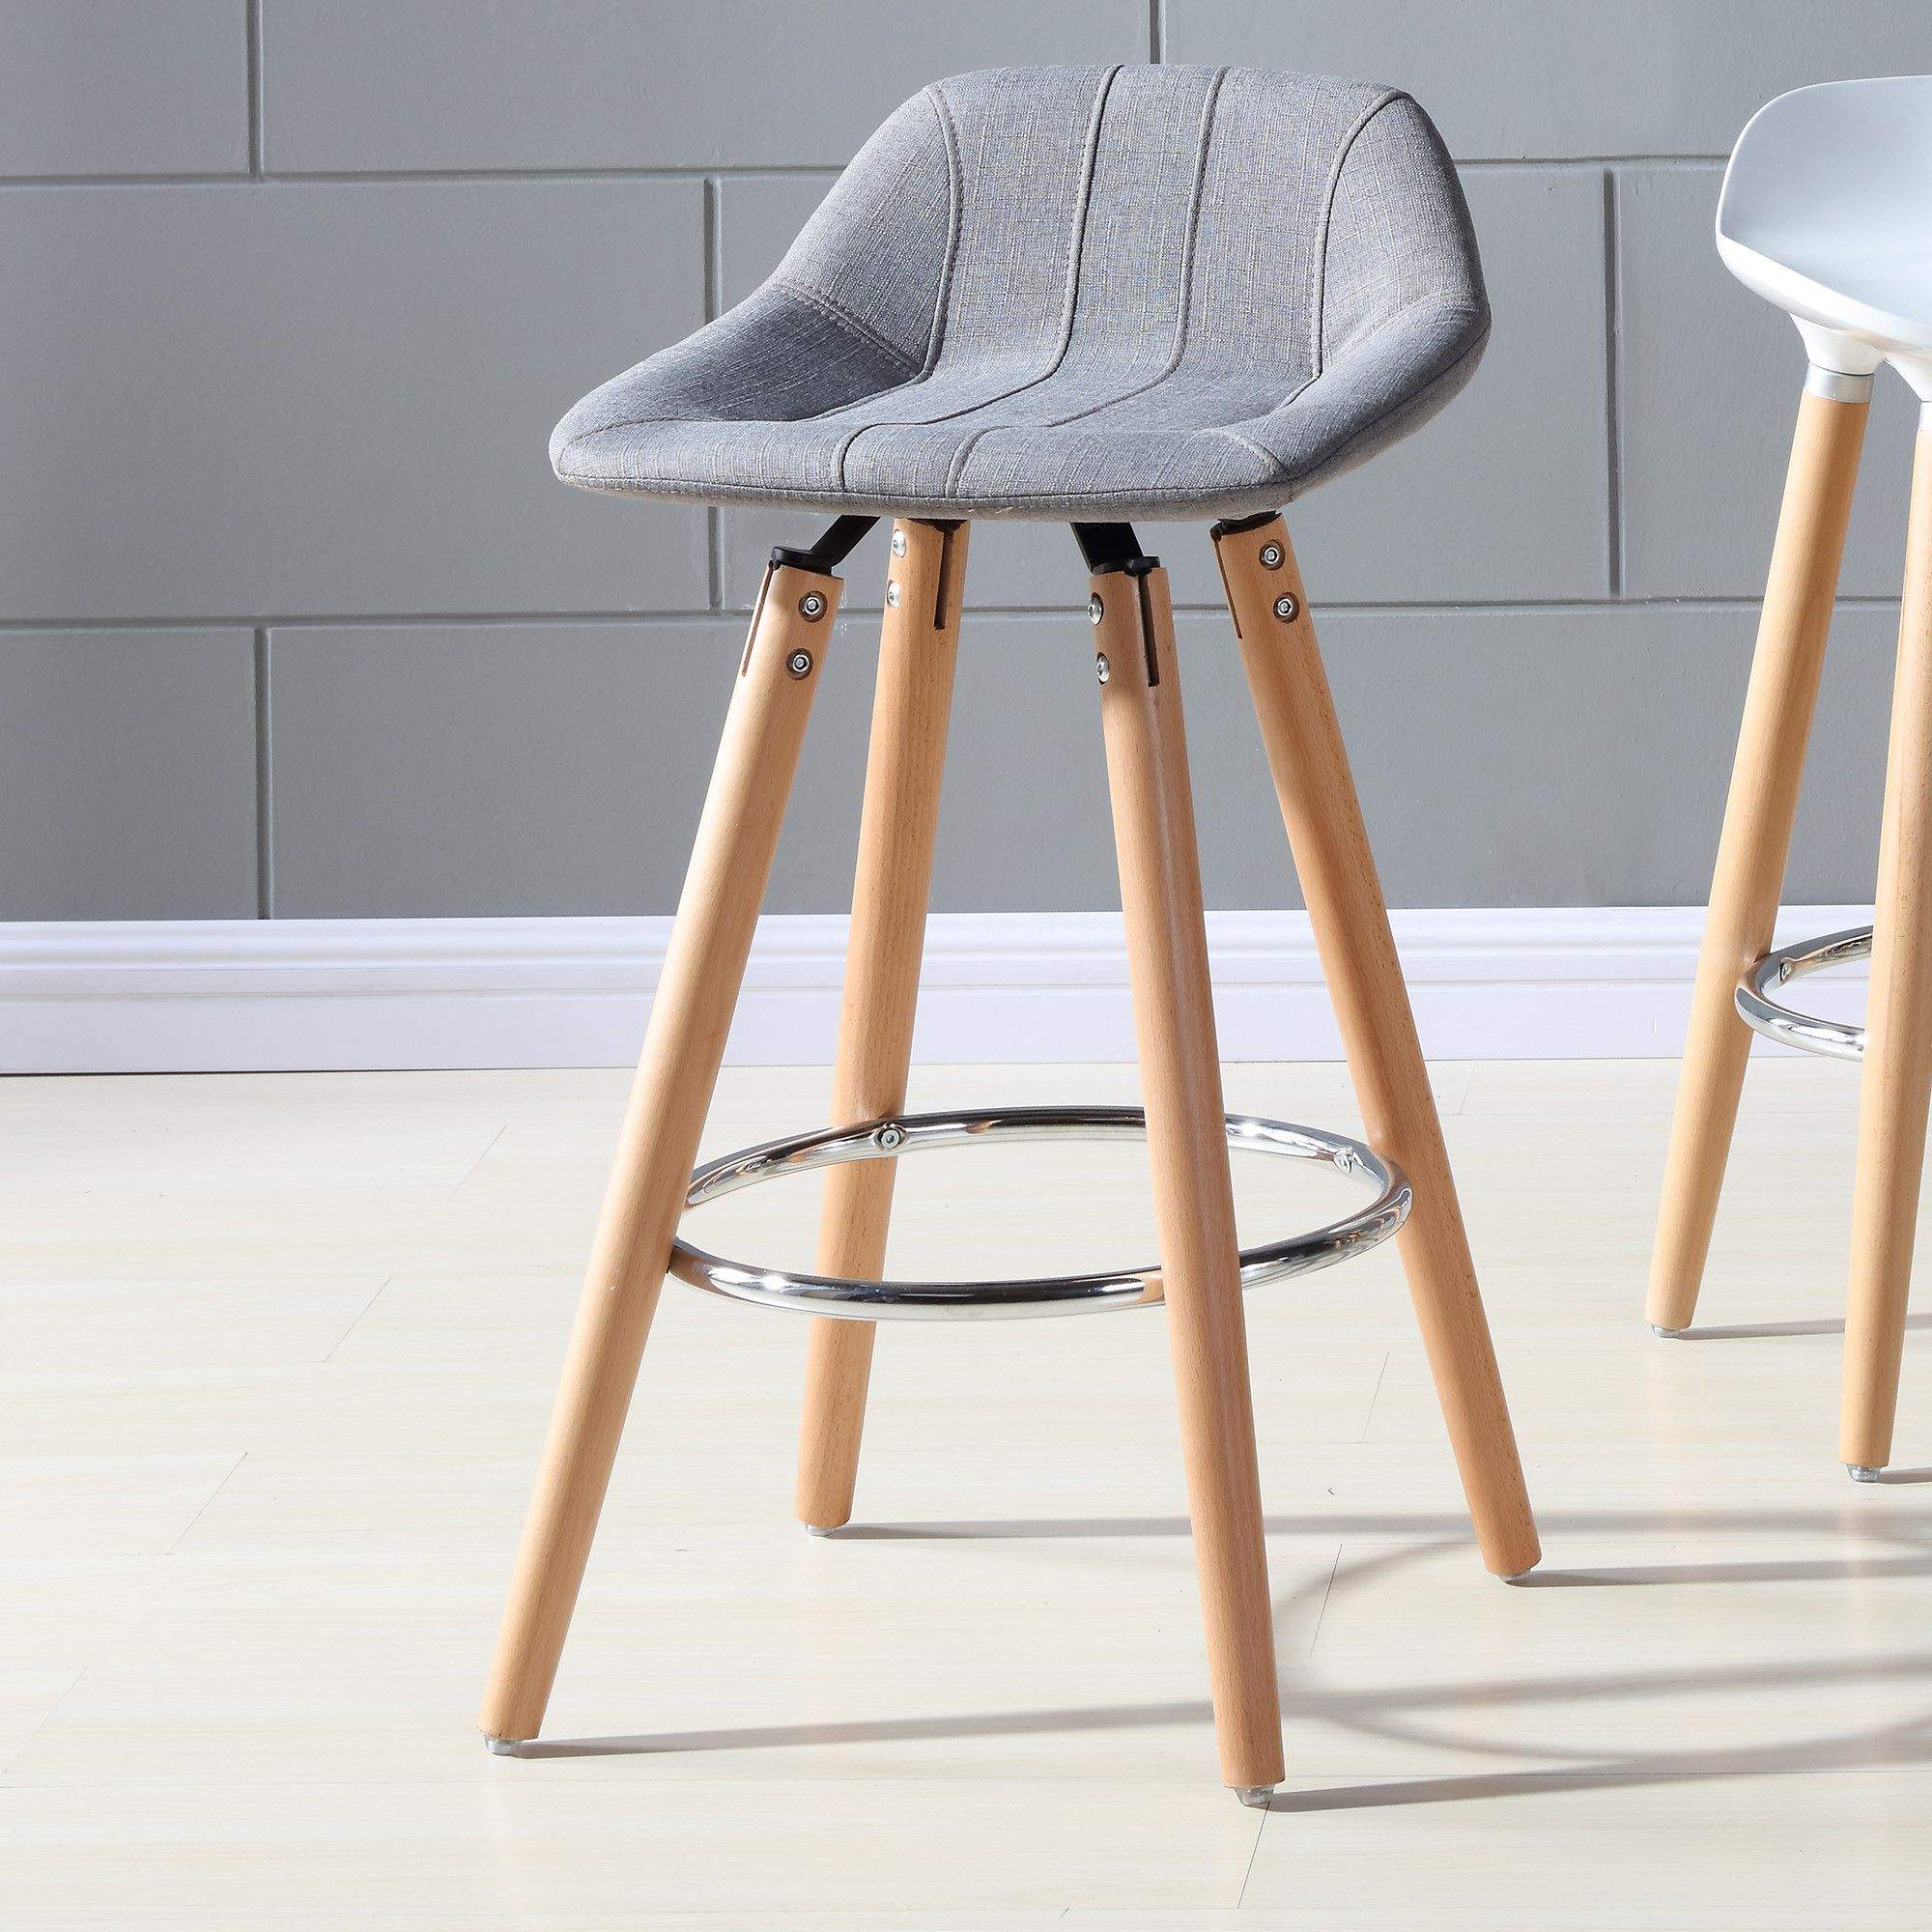 Armen Living Igloo 26 In Low Back Counter Stool Add A Few Armen Living 26 Inch Igloo Low B Bar Stools With Backs Swivel Bar Stools Counter Height Bar Stools